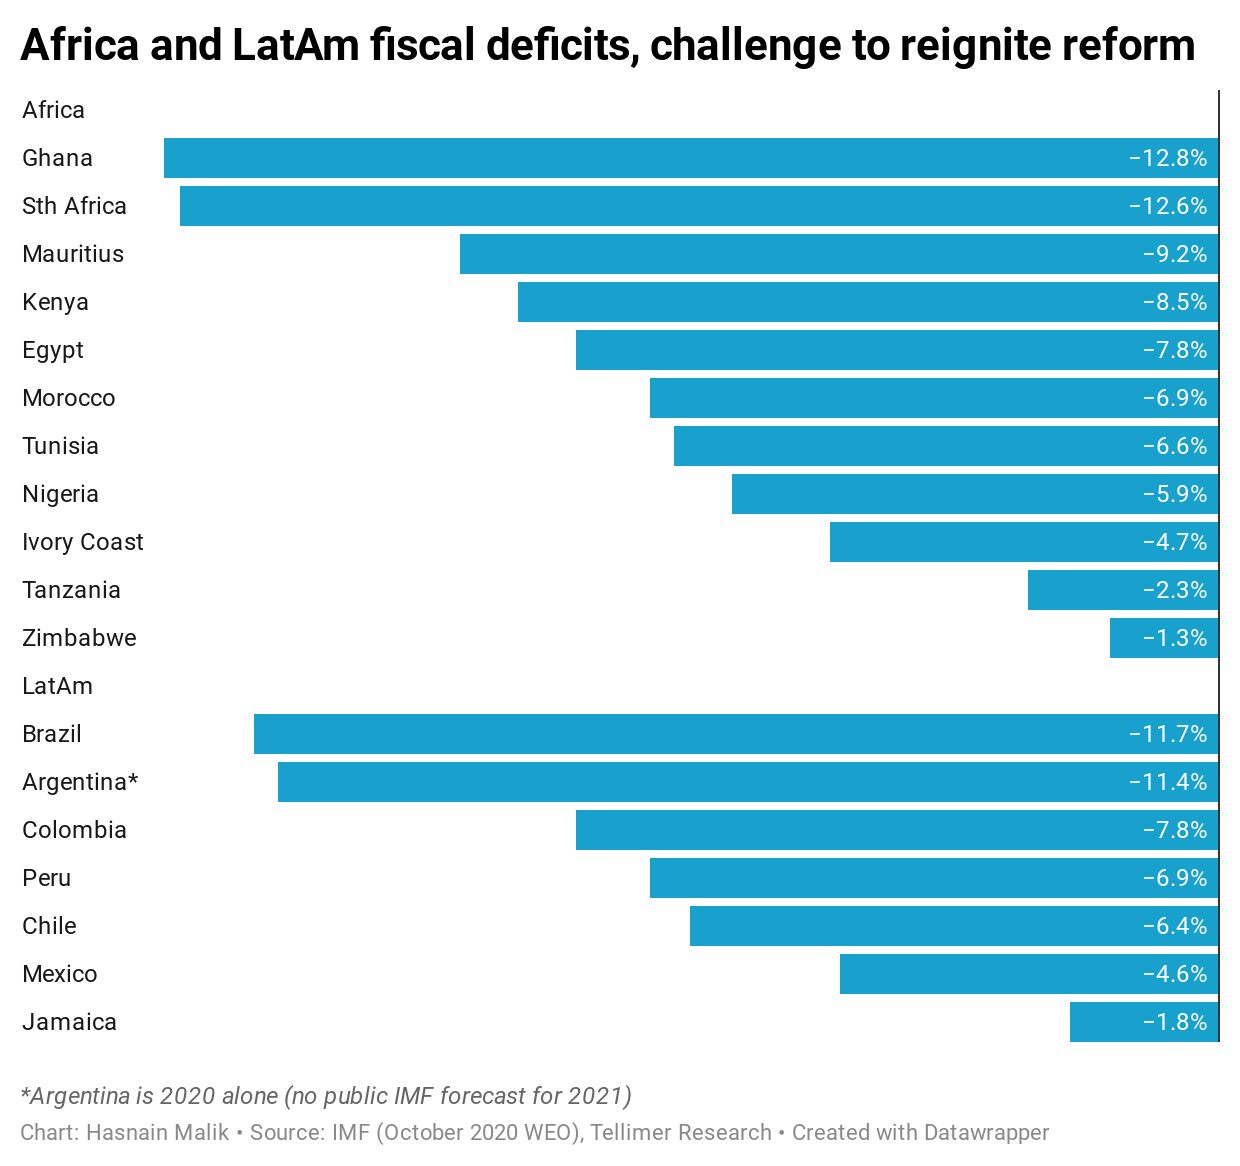 Africa and LatAm fiscal deficits, challenge to reignite reform